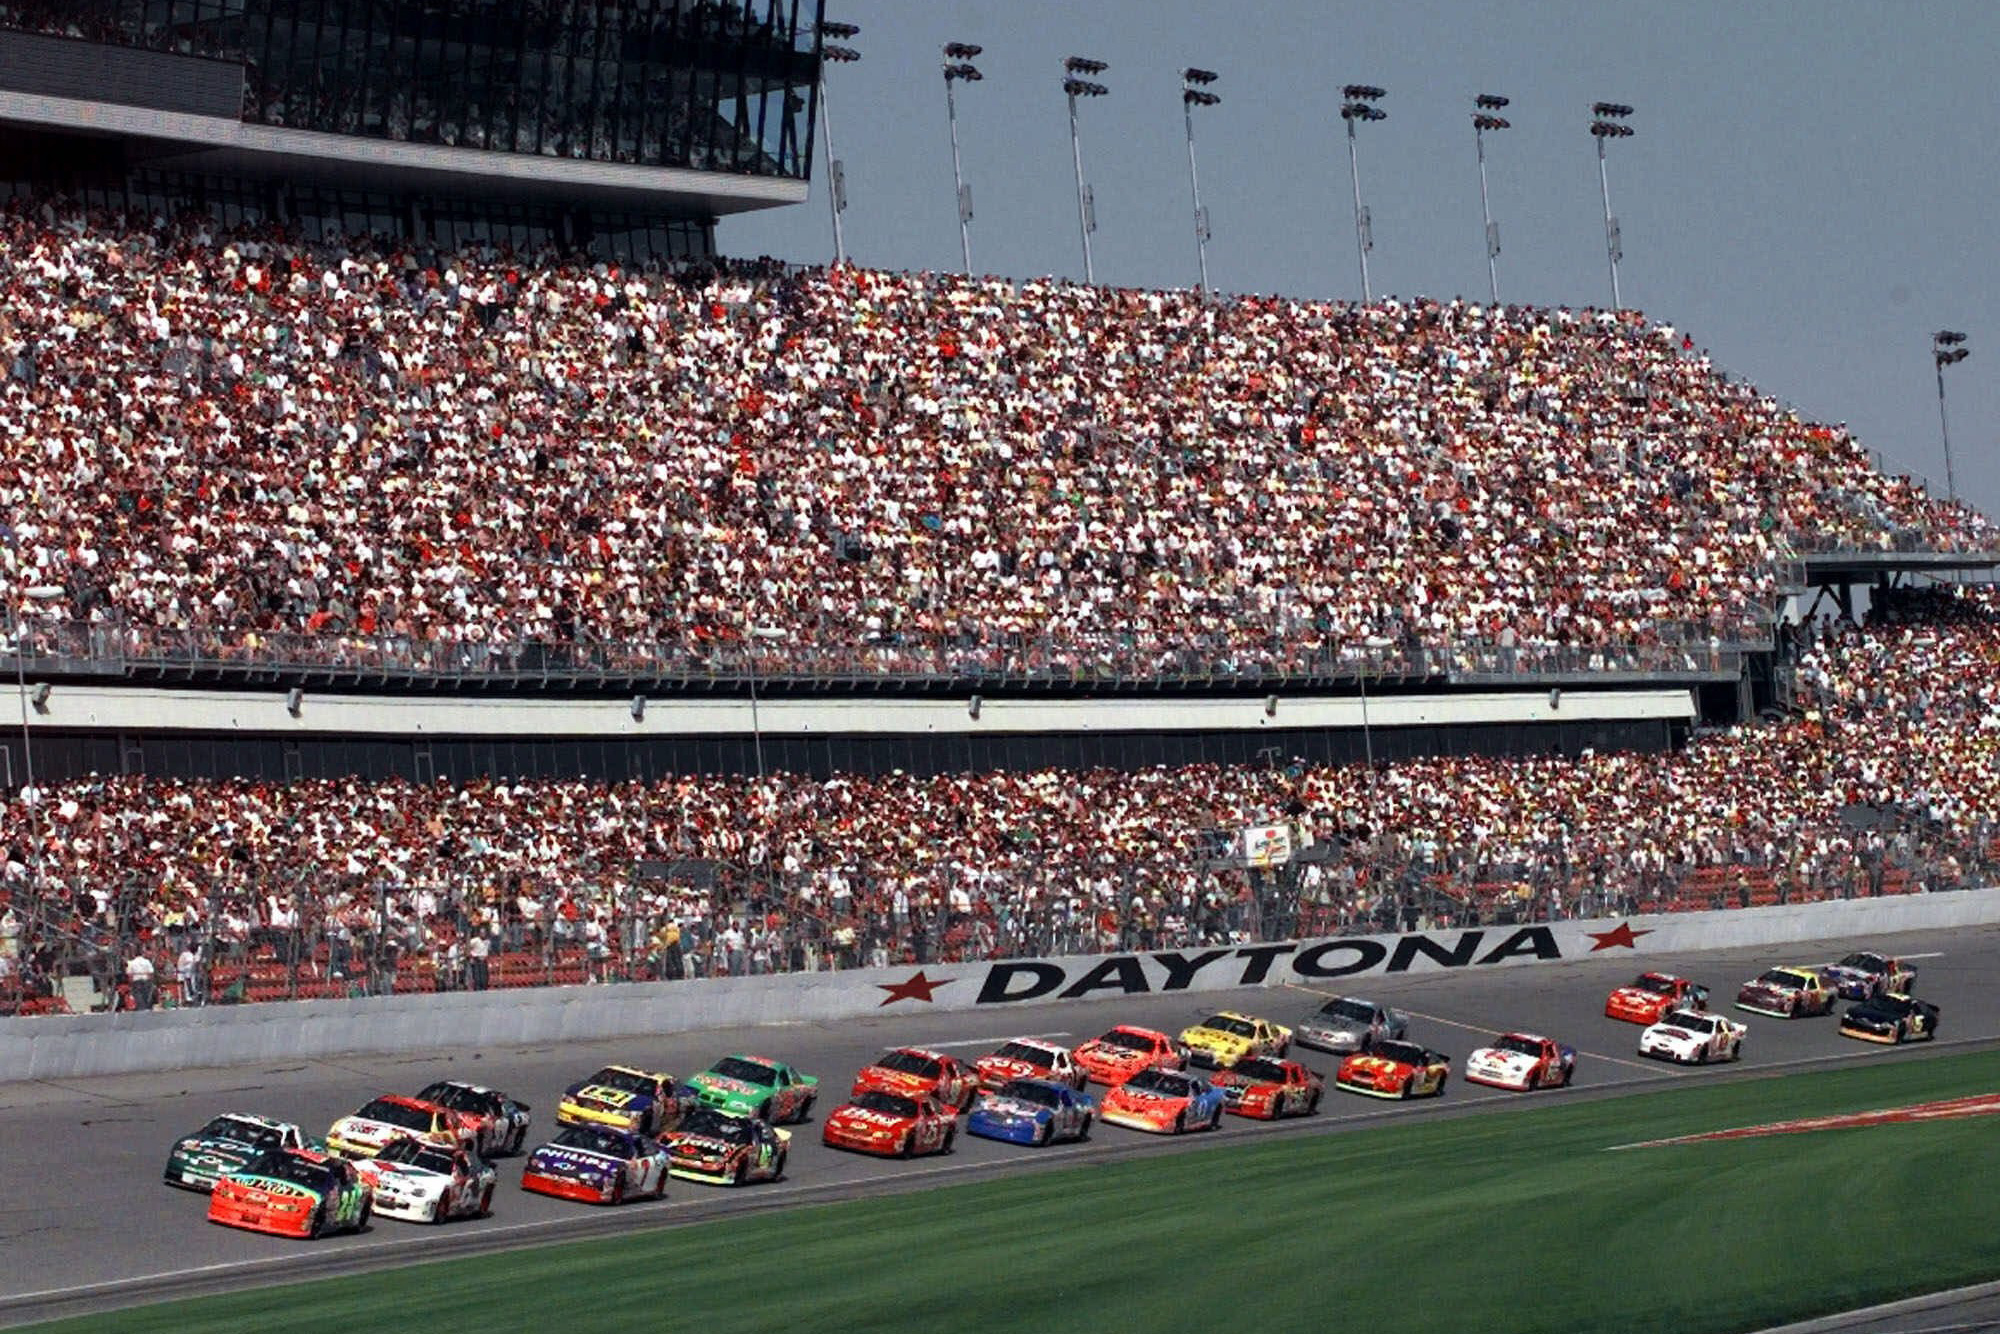 DAYTONA QUALIFYING RACE